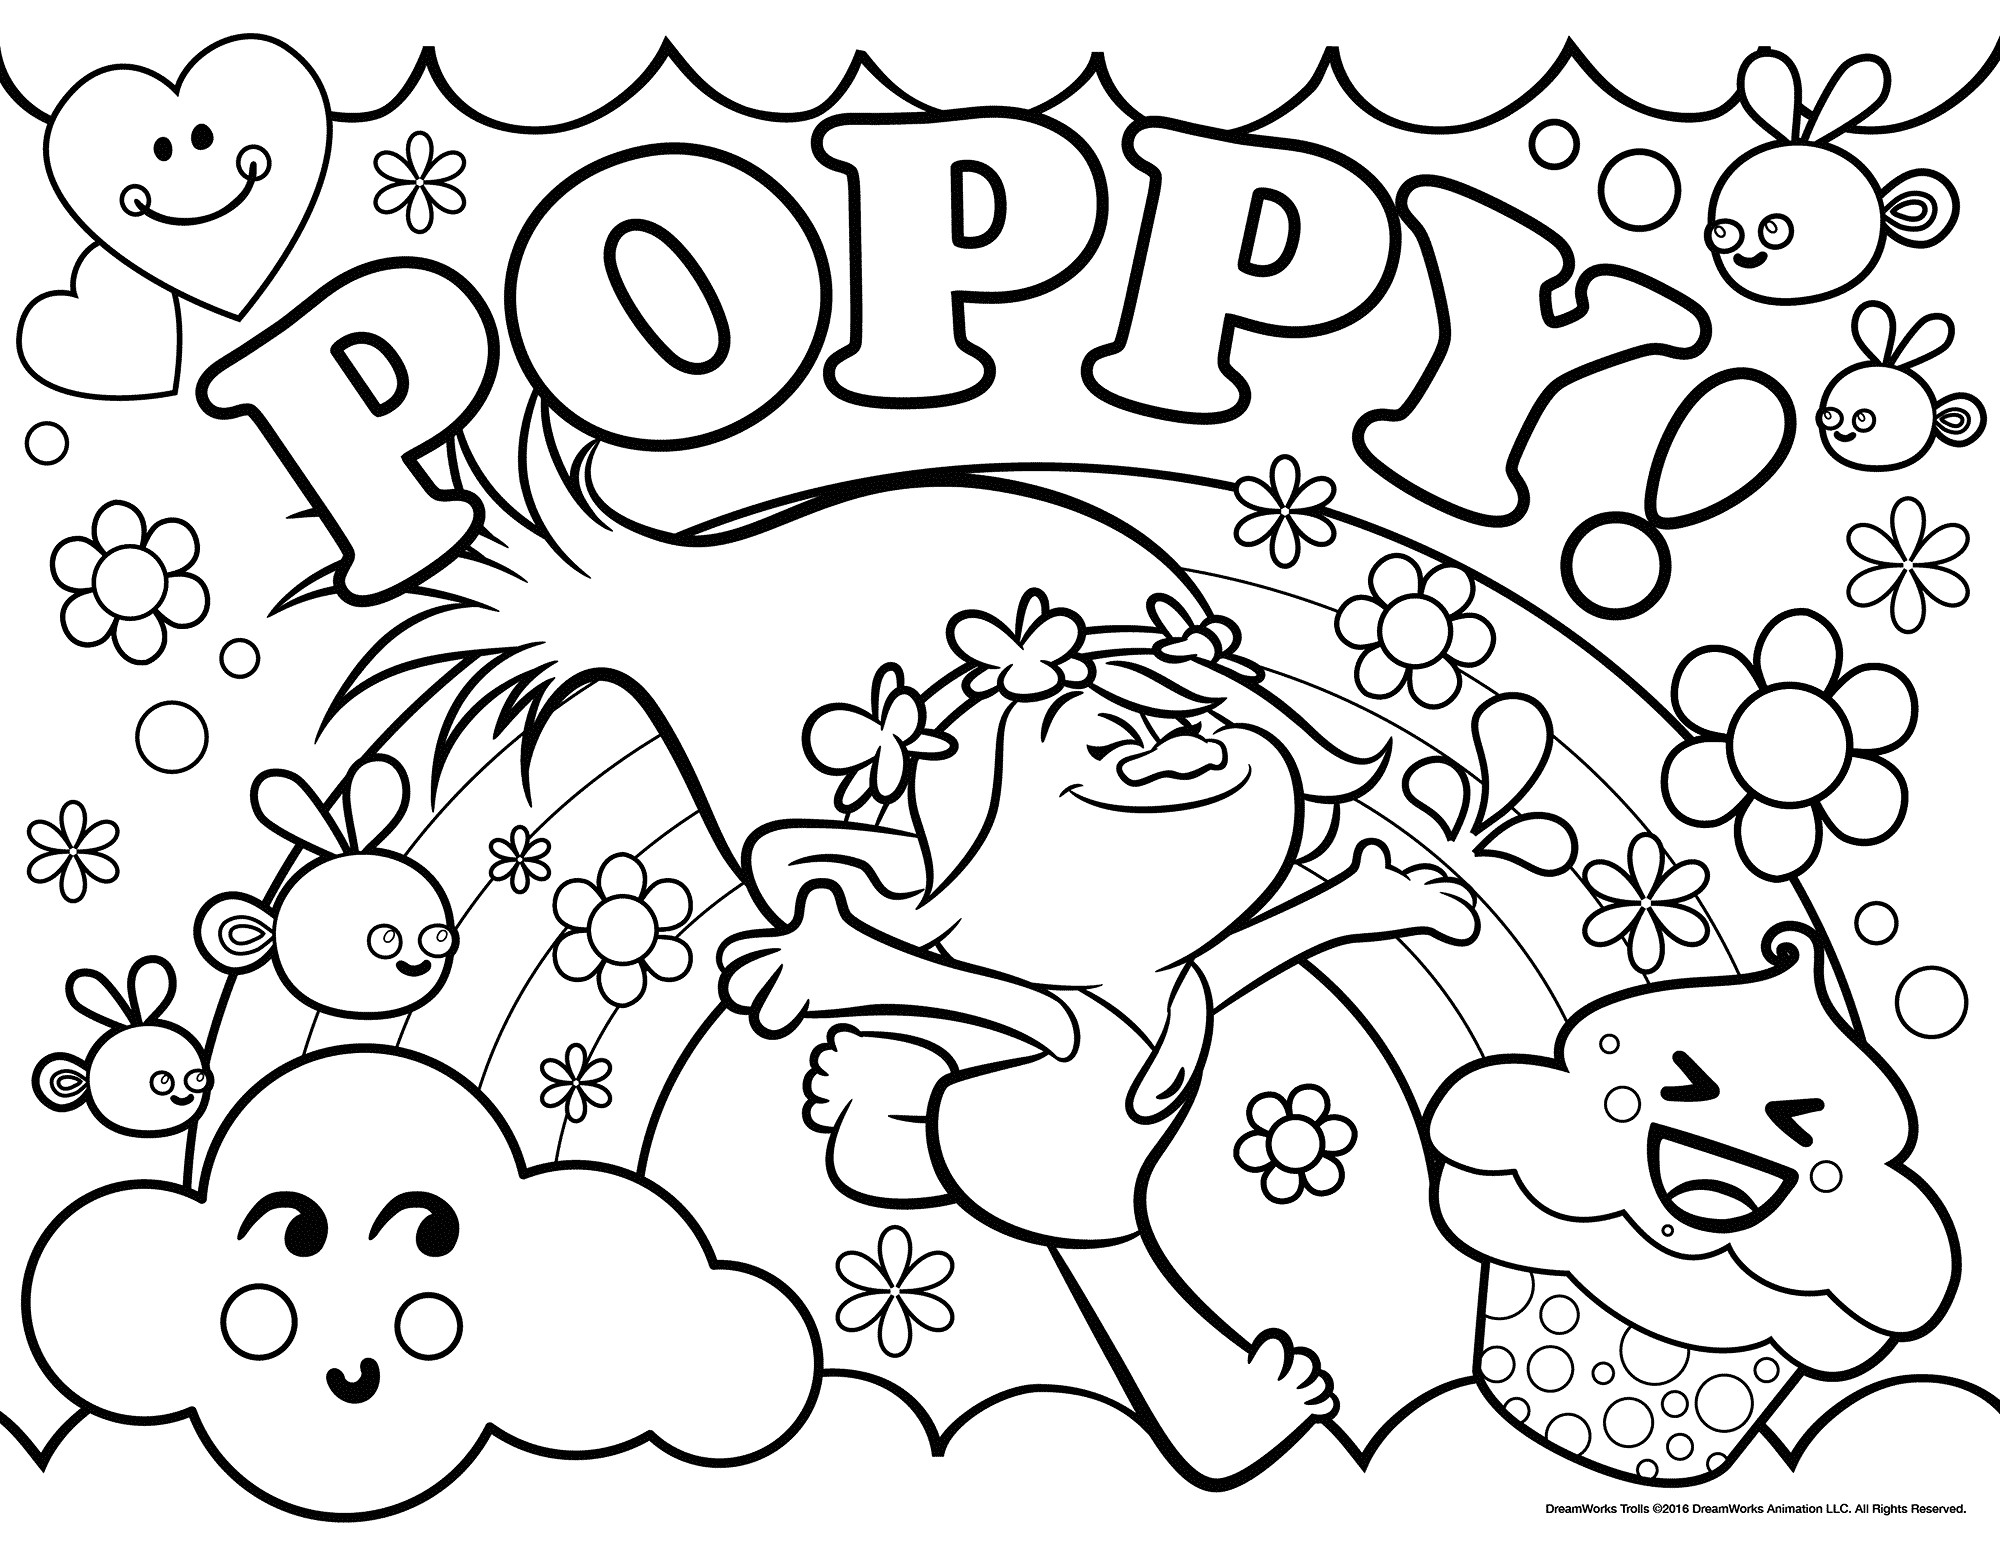 Best ideas about Trolls Free Printable Coloring Sheets . Save or Pin Trolls Movie Coloring Pages Best Coloring Pages For Kids Now.